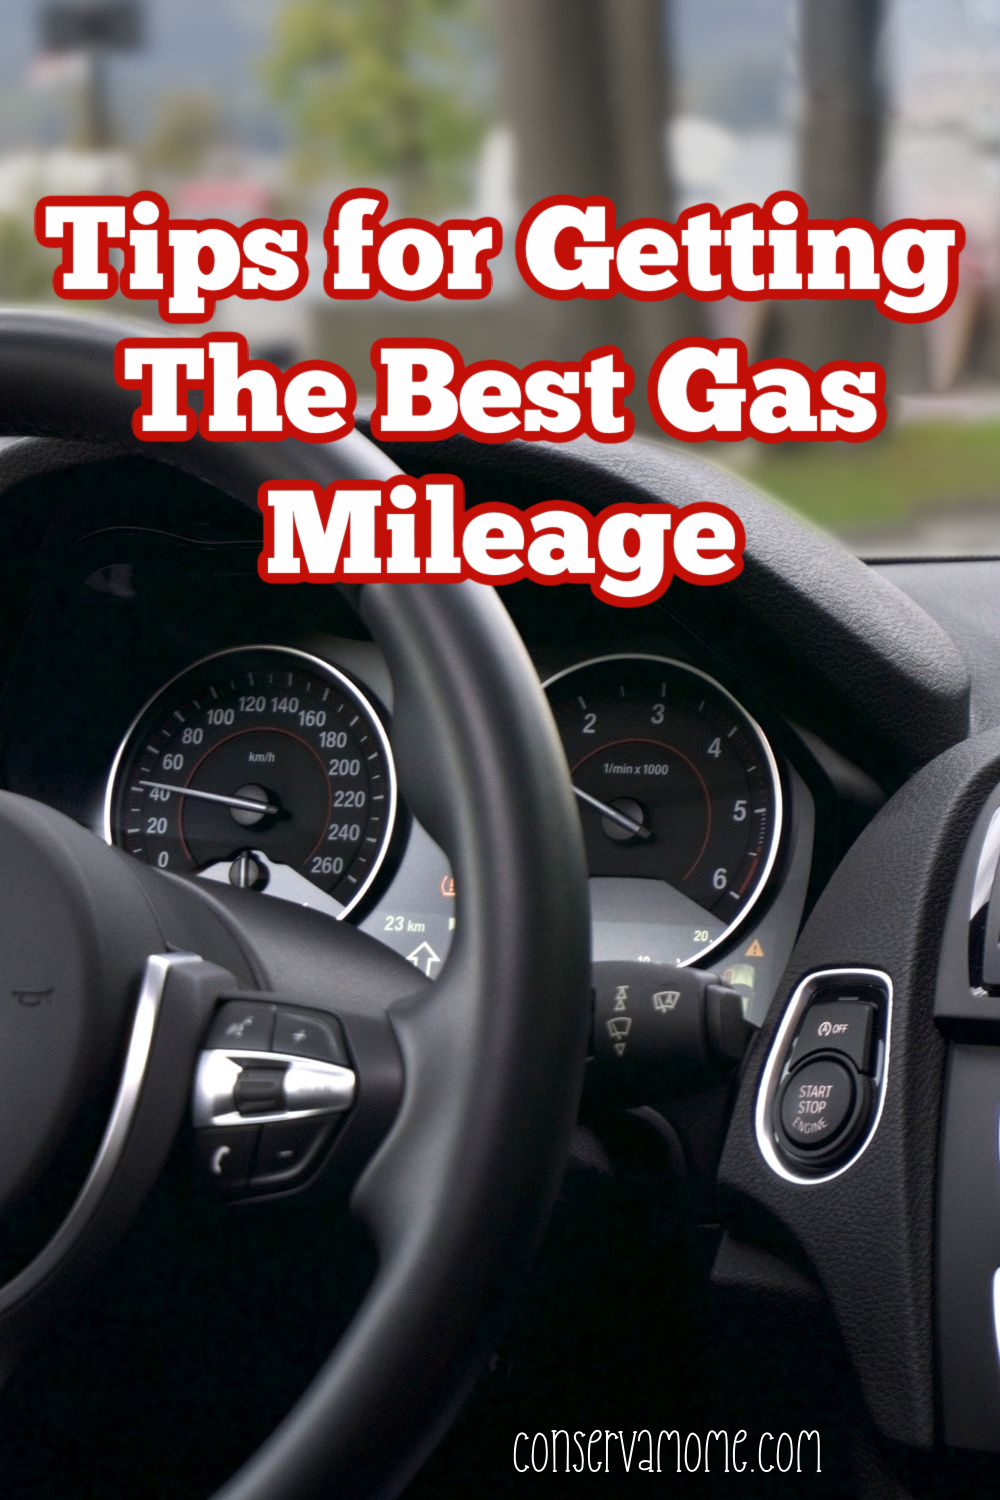 Tips for Getting The Best Gas Mileage